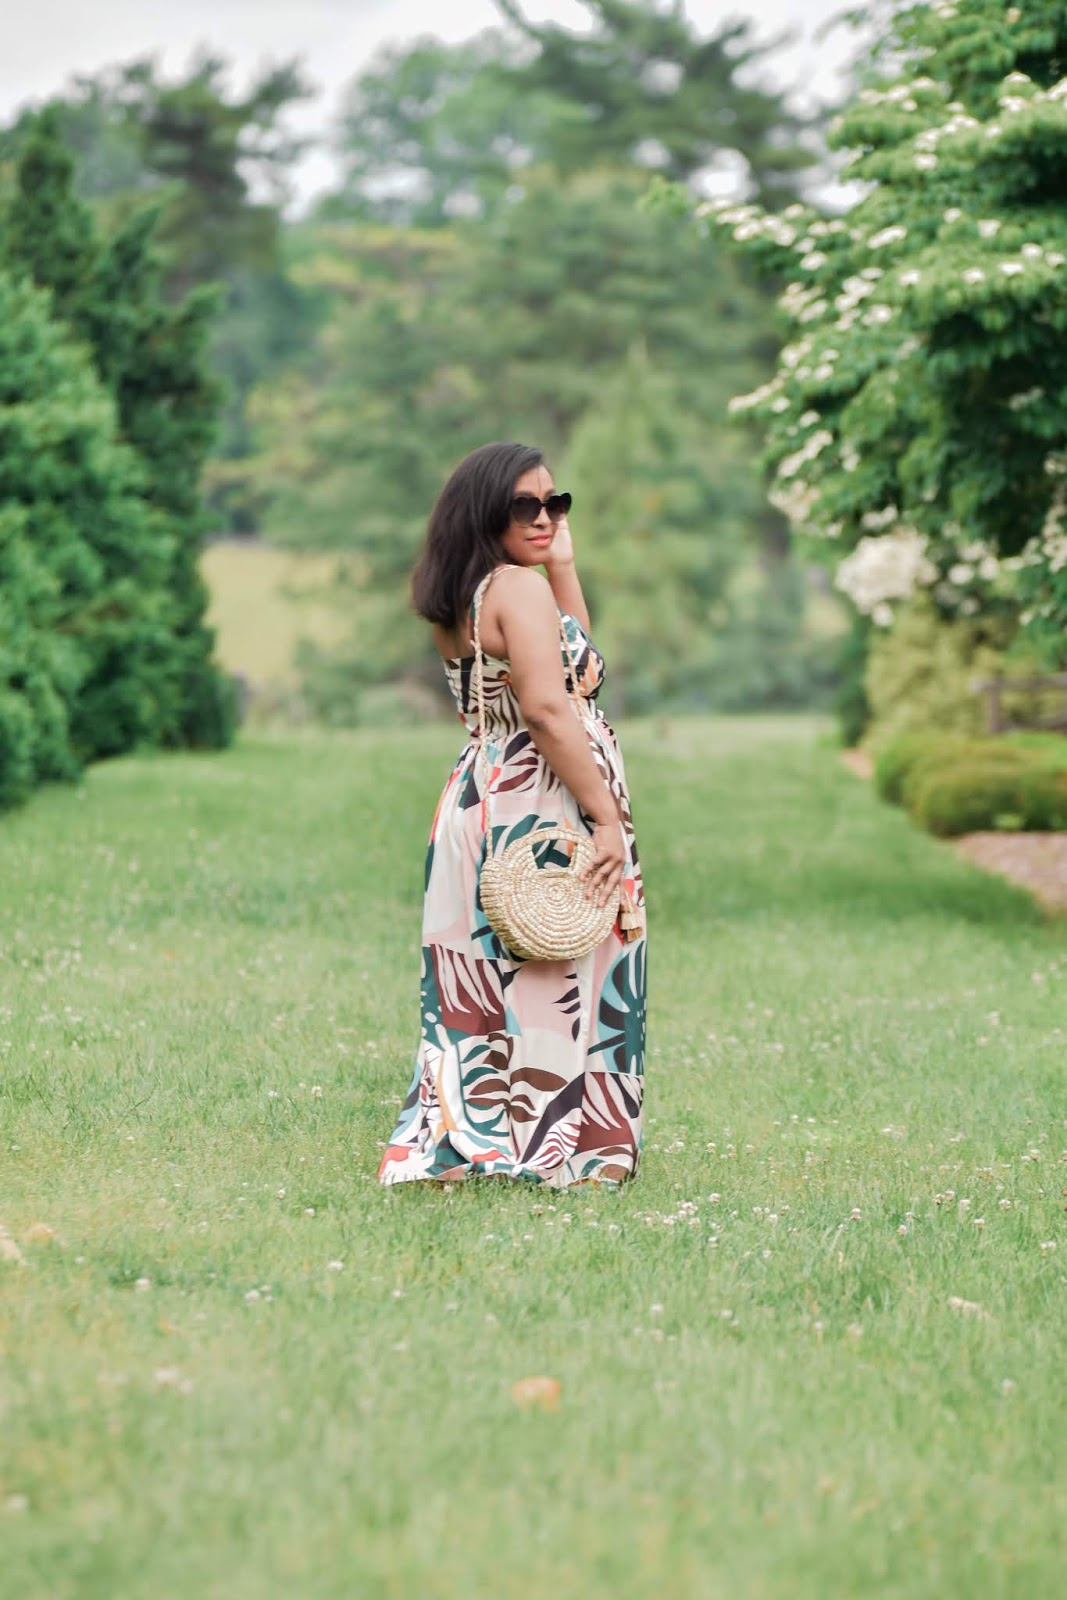 Shein, shein dresses, tropical print, summer dresses, summer outfit ideas, boyd virginia, virginia is for lovers